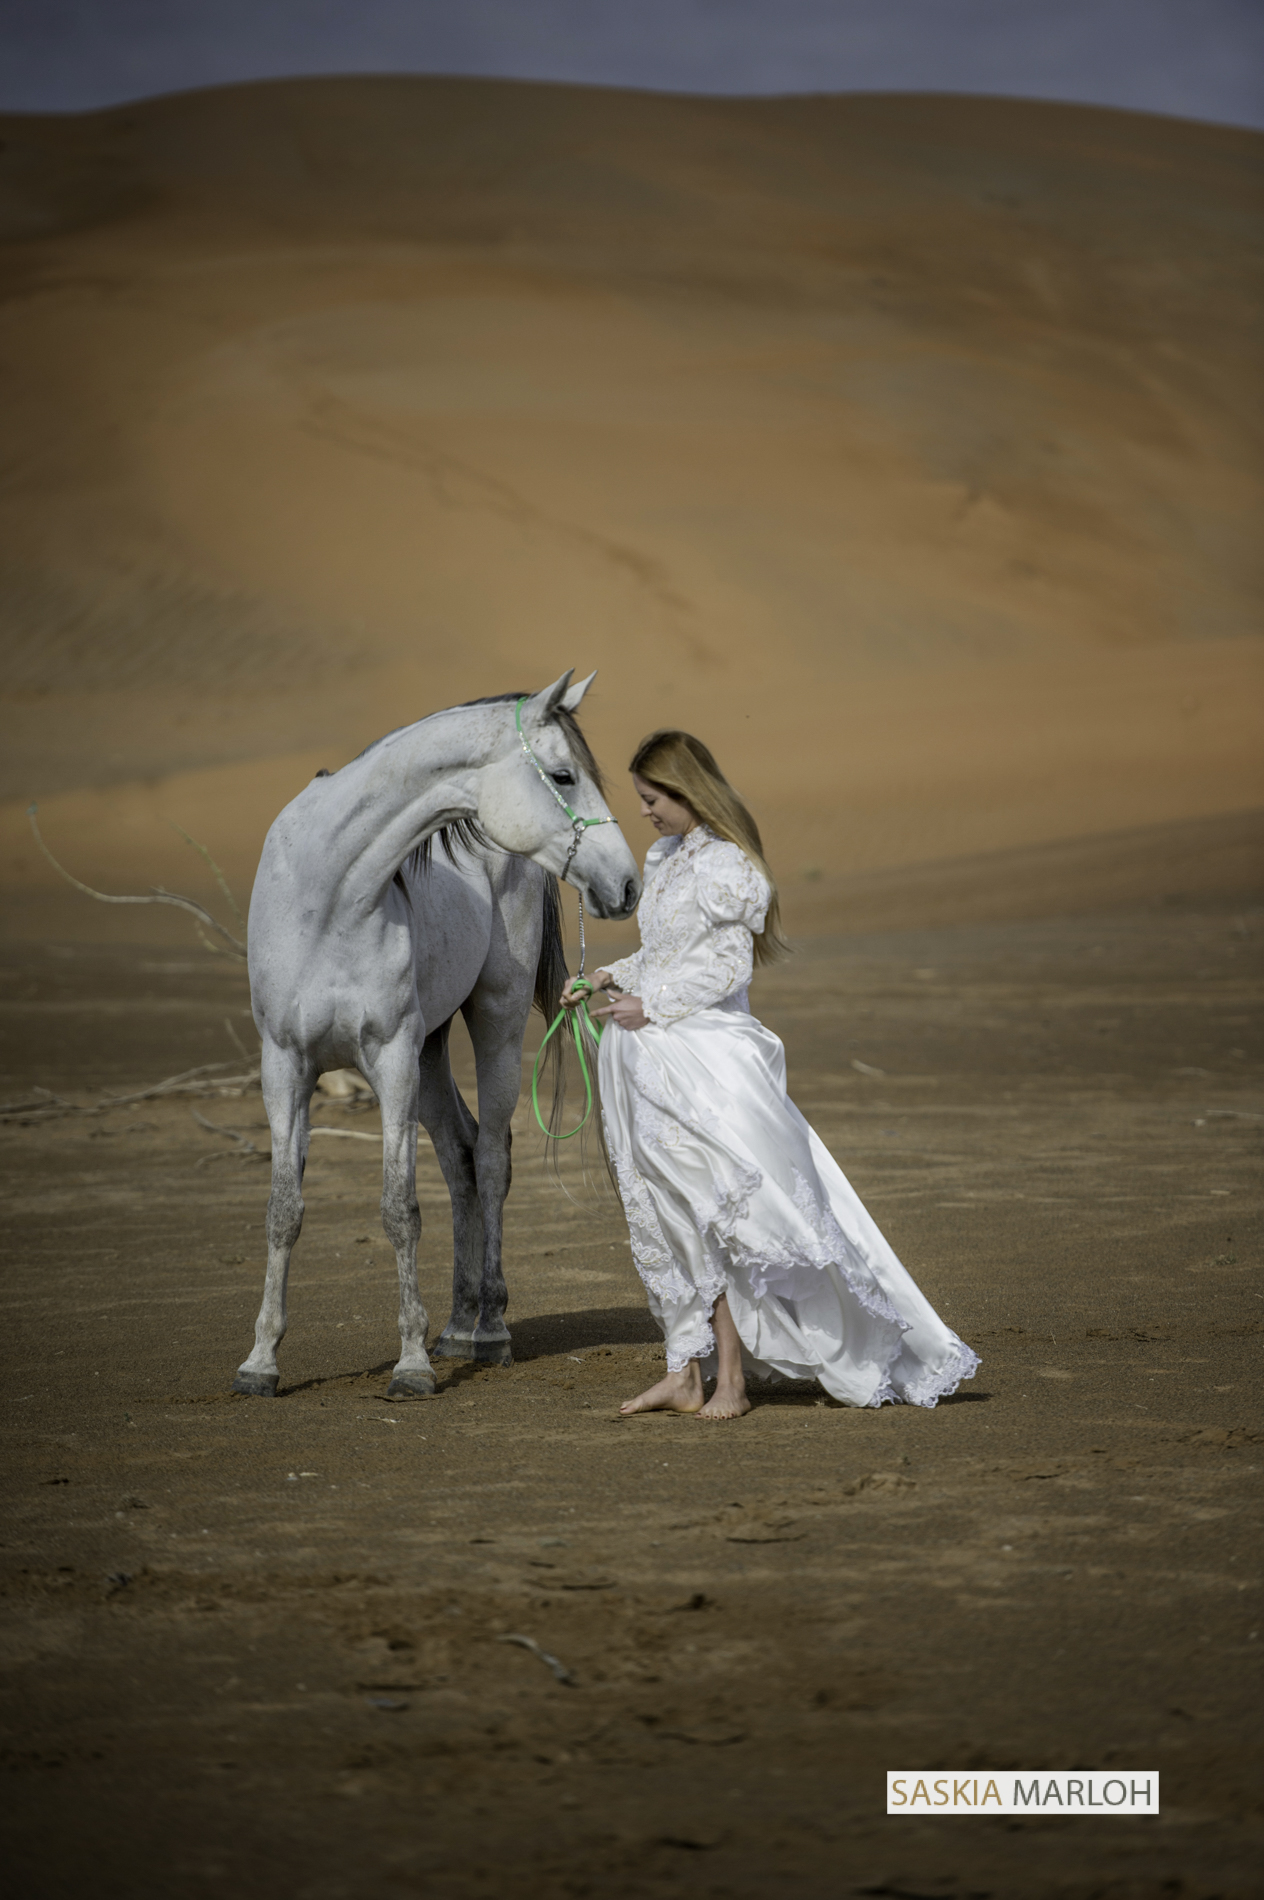 emirates-wedding-desert-shoot-horse-uae-female-wedding-photographer-uae-saskia-marloh-10